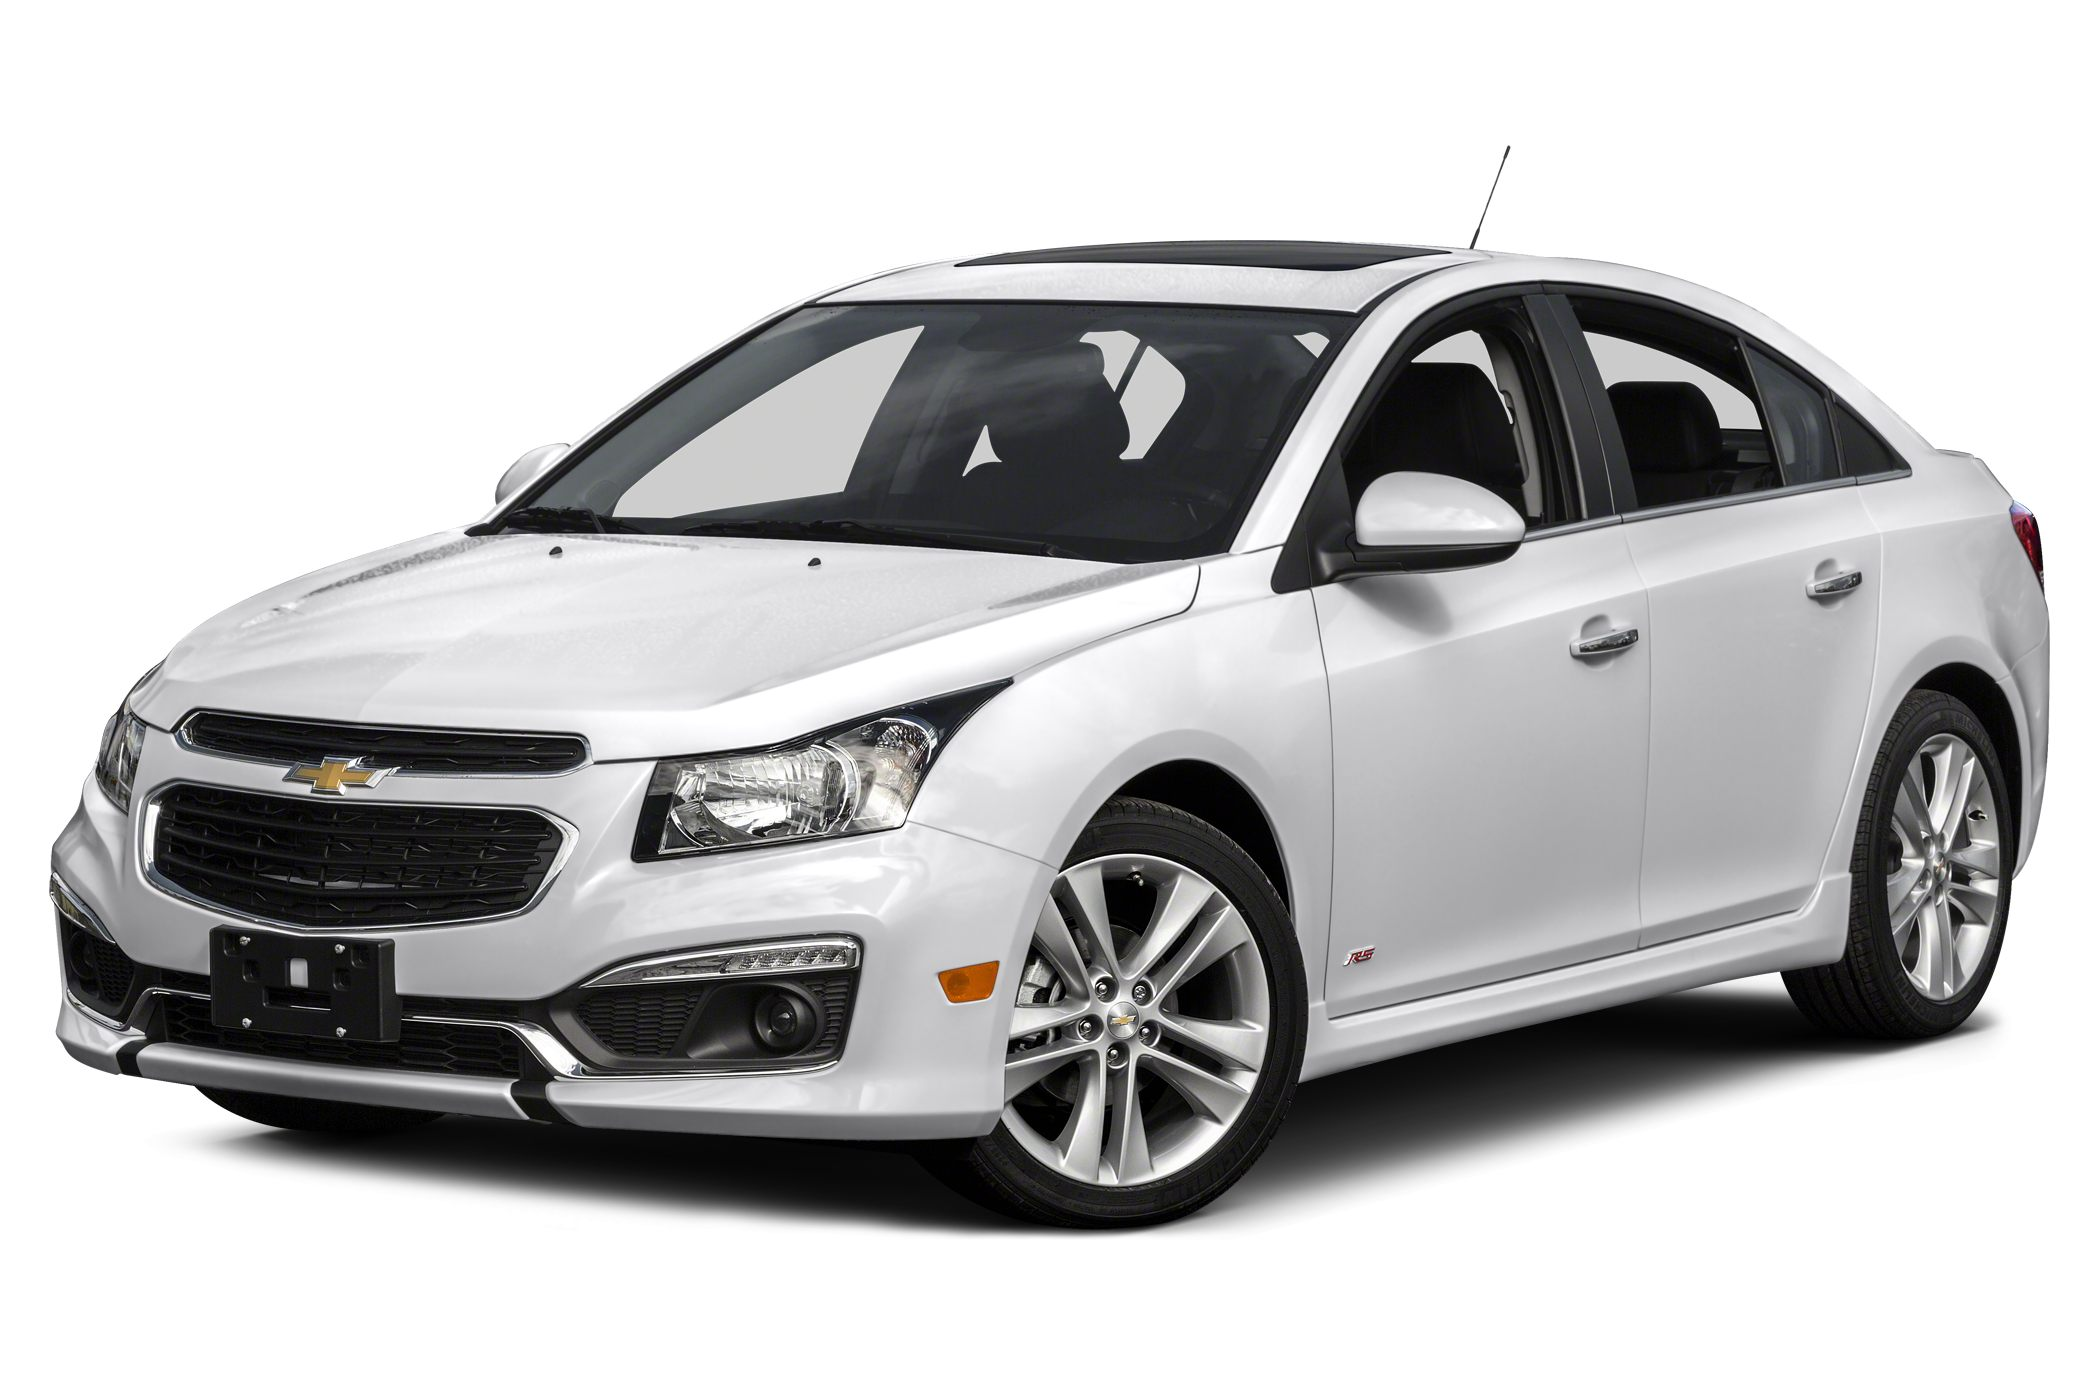 Chevrolet Cruze Owners Manual: Brakes